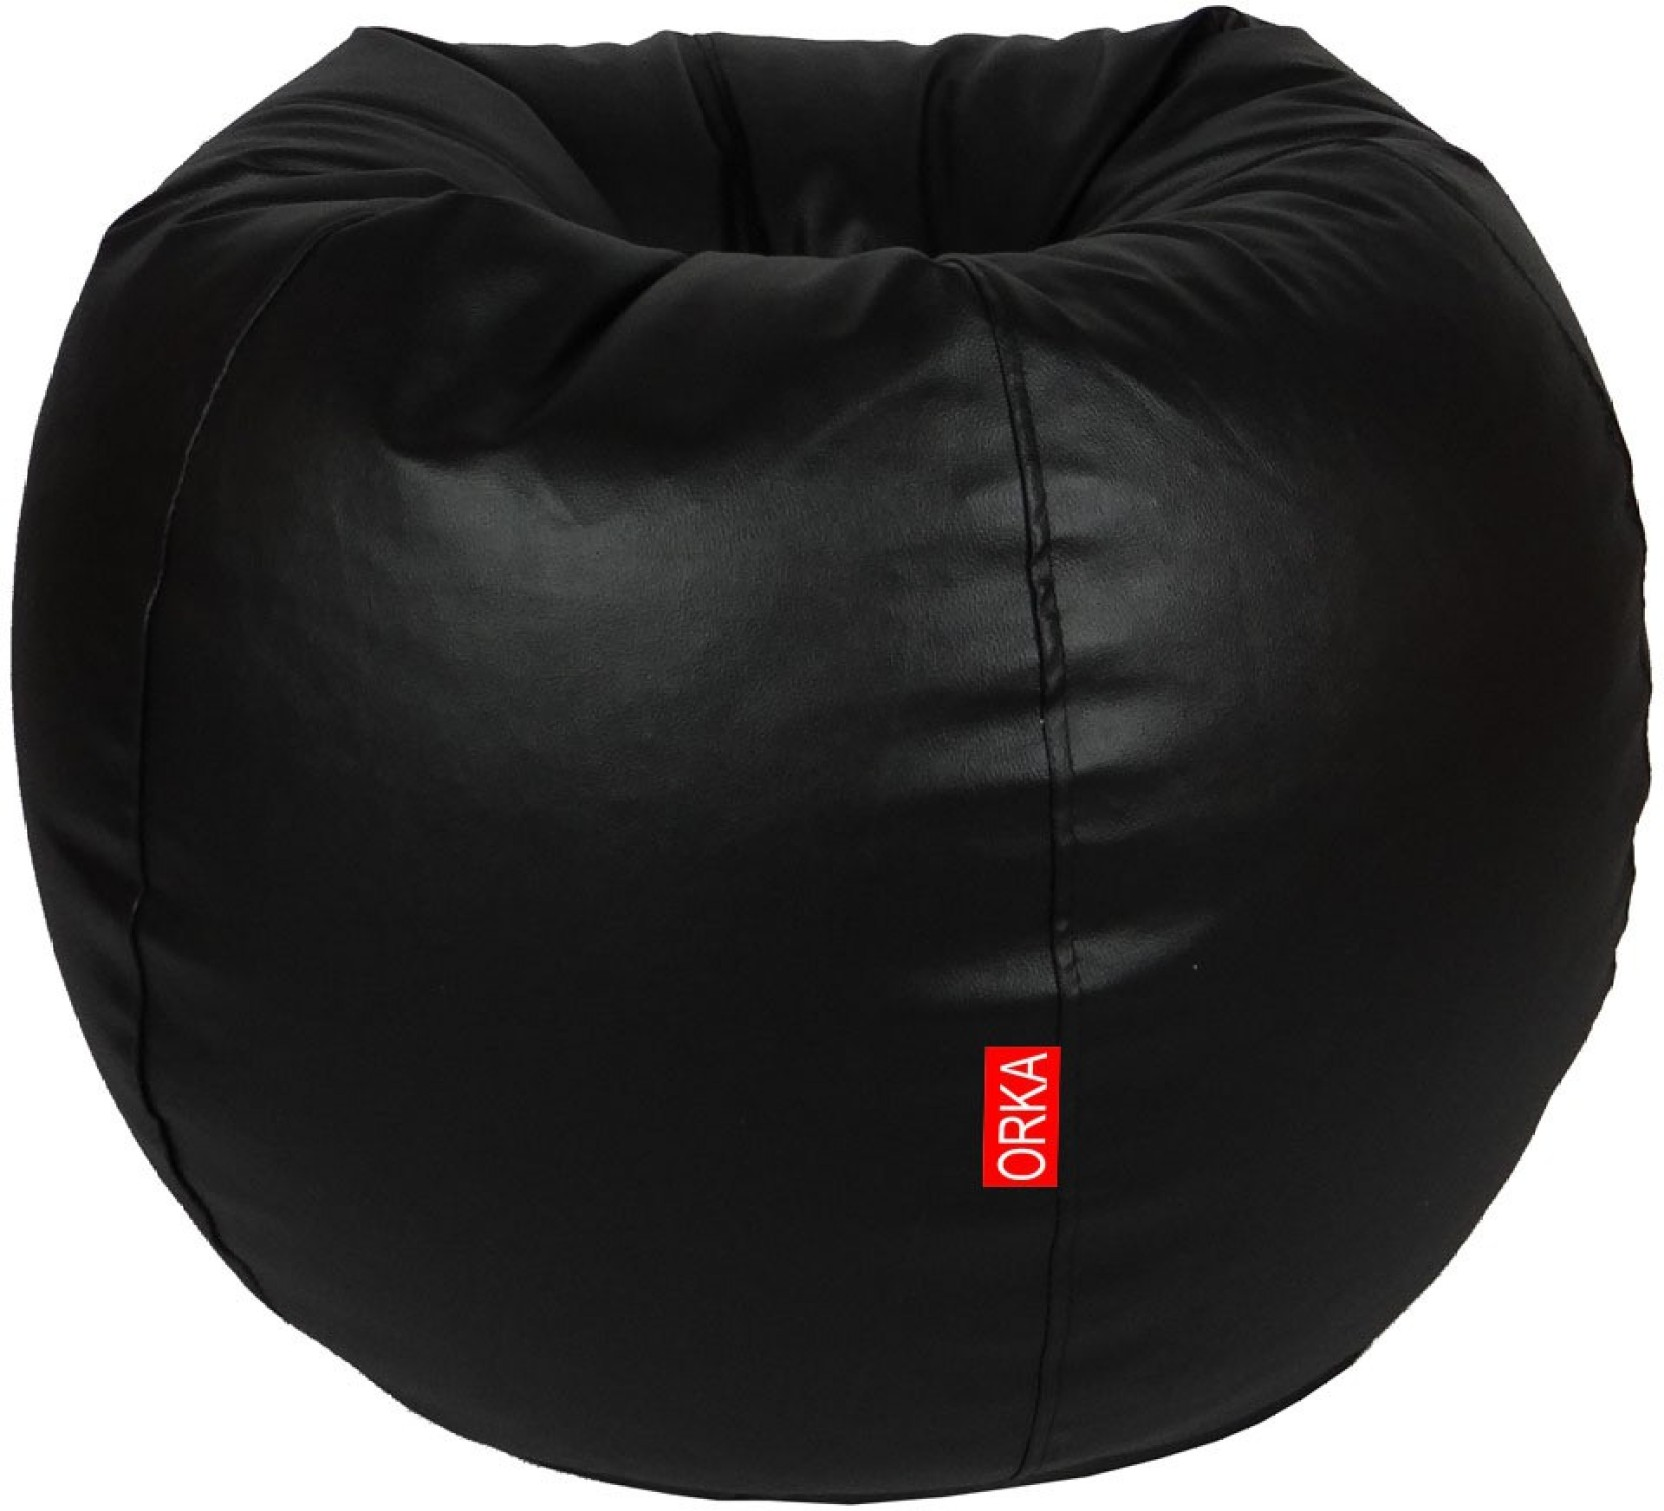 Orka Xxl Bean Bag With Bean Filling Price In India Buy